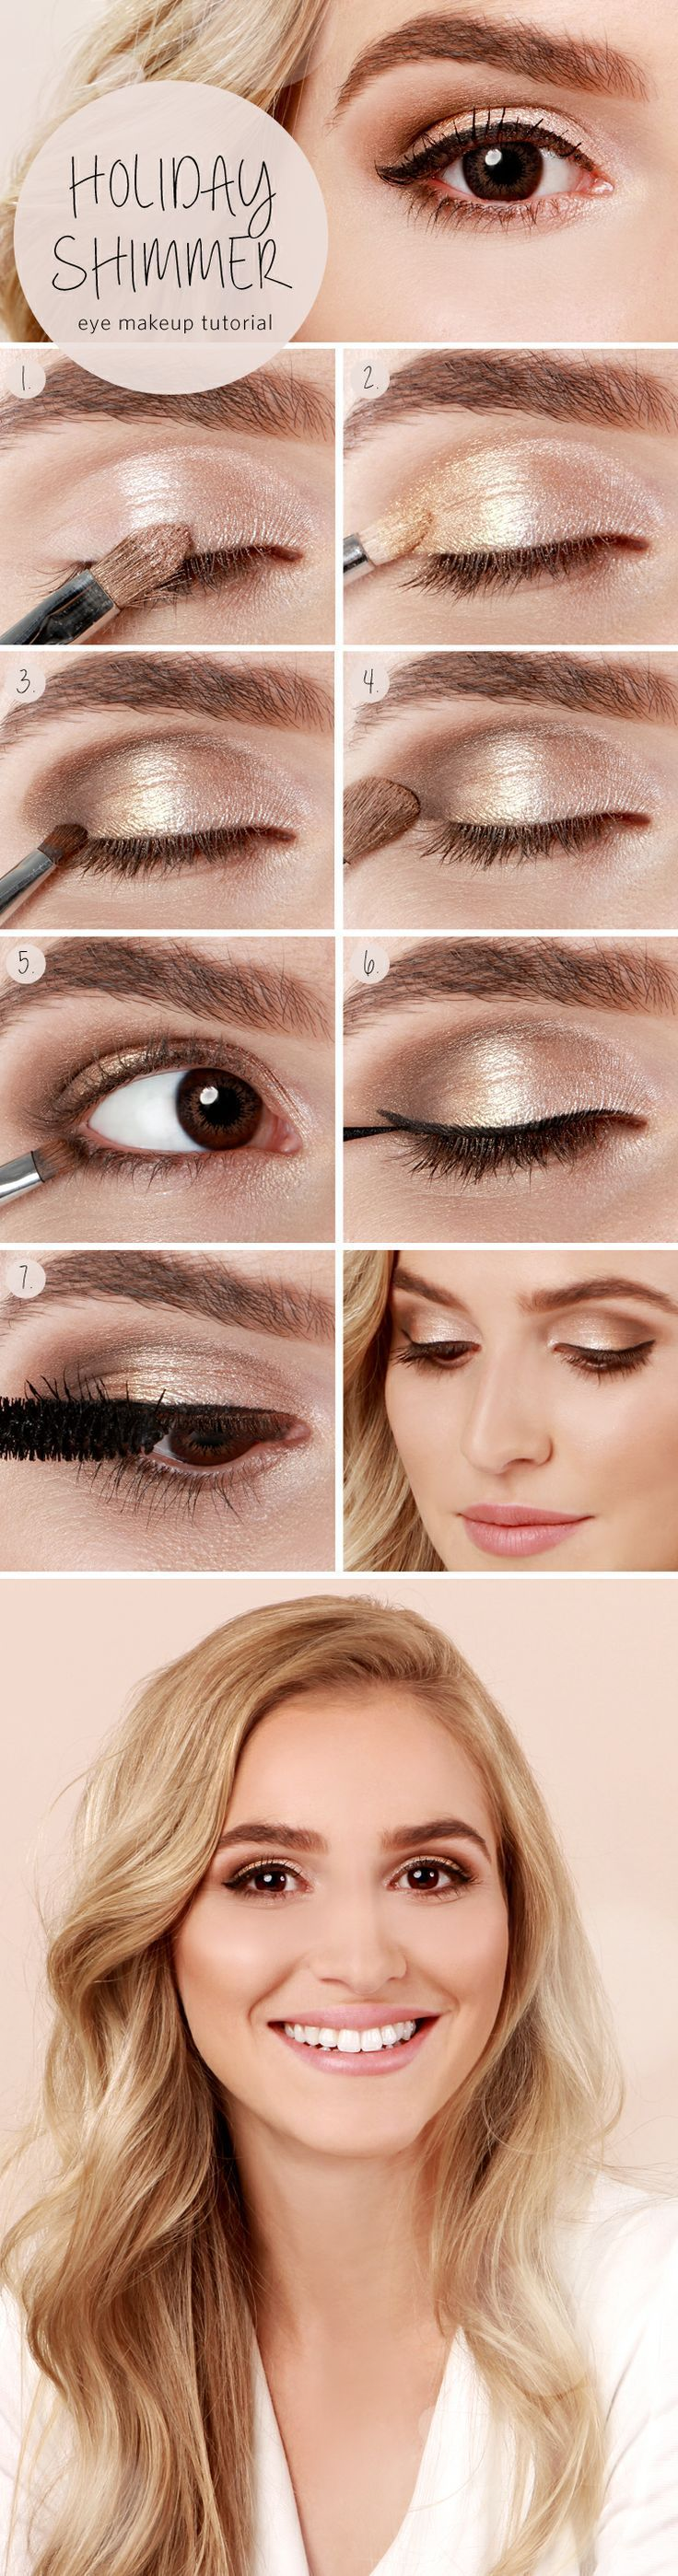 beginner makeup artist resume%0A    eye makeup tutorials from Pinterest to turn you into a beauty PRO